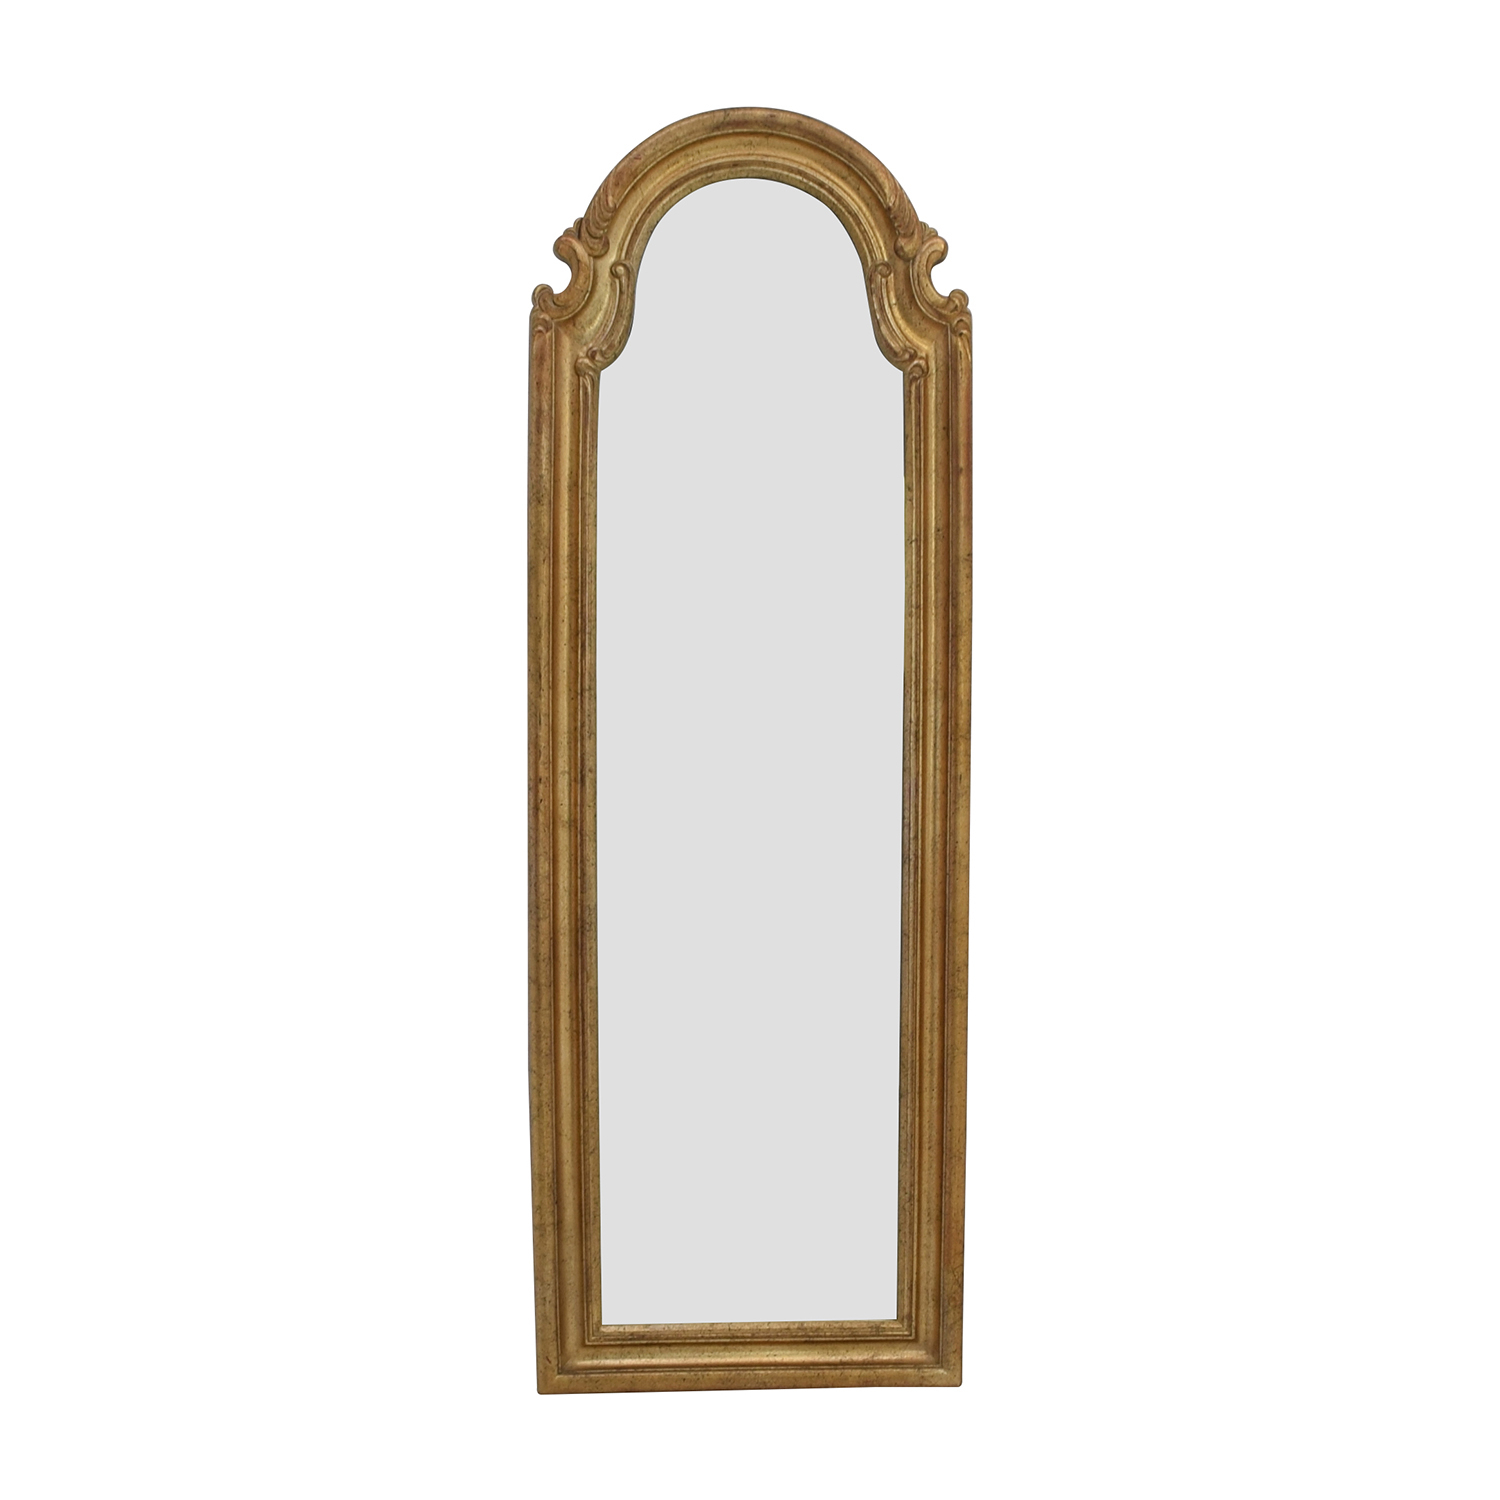 59% Off – Bombay Company Bombay Co Antique Gold Wall Mirror / Decor In Gold Arch Wall Mirrors (View 15 of 20)